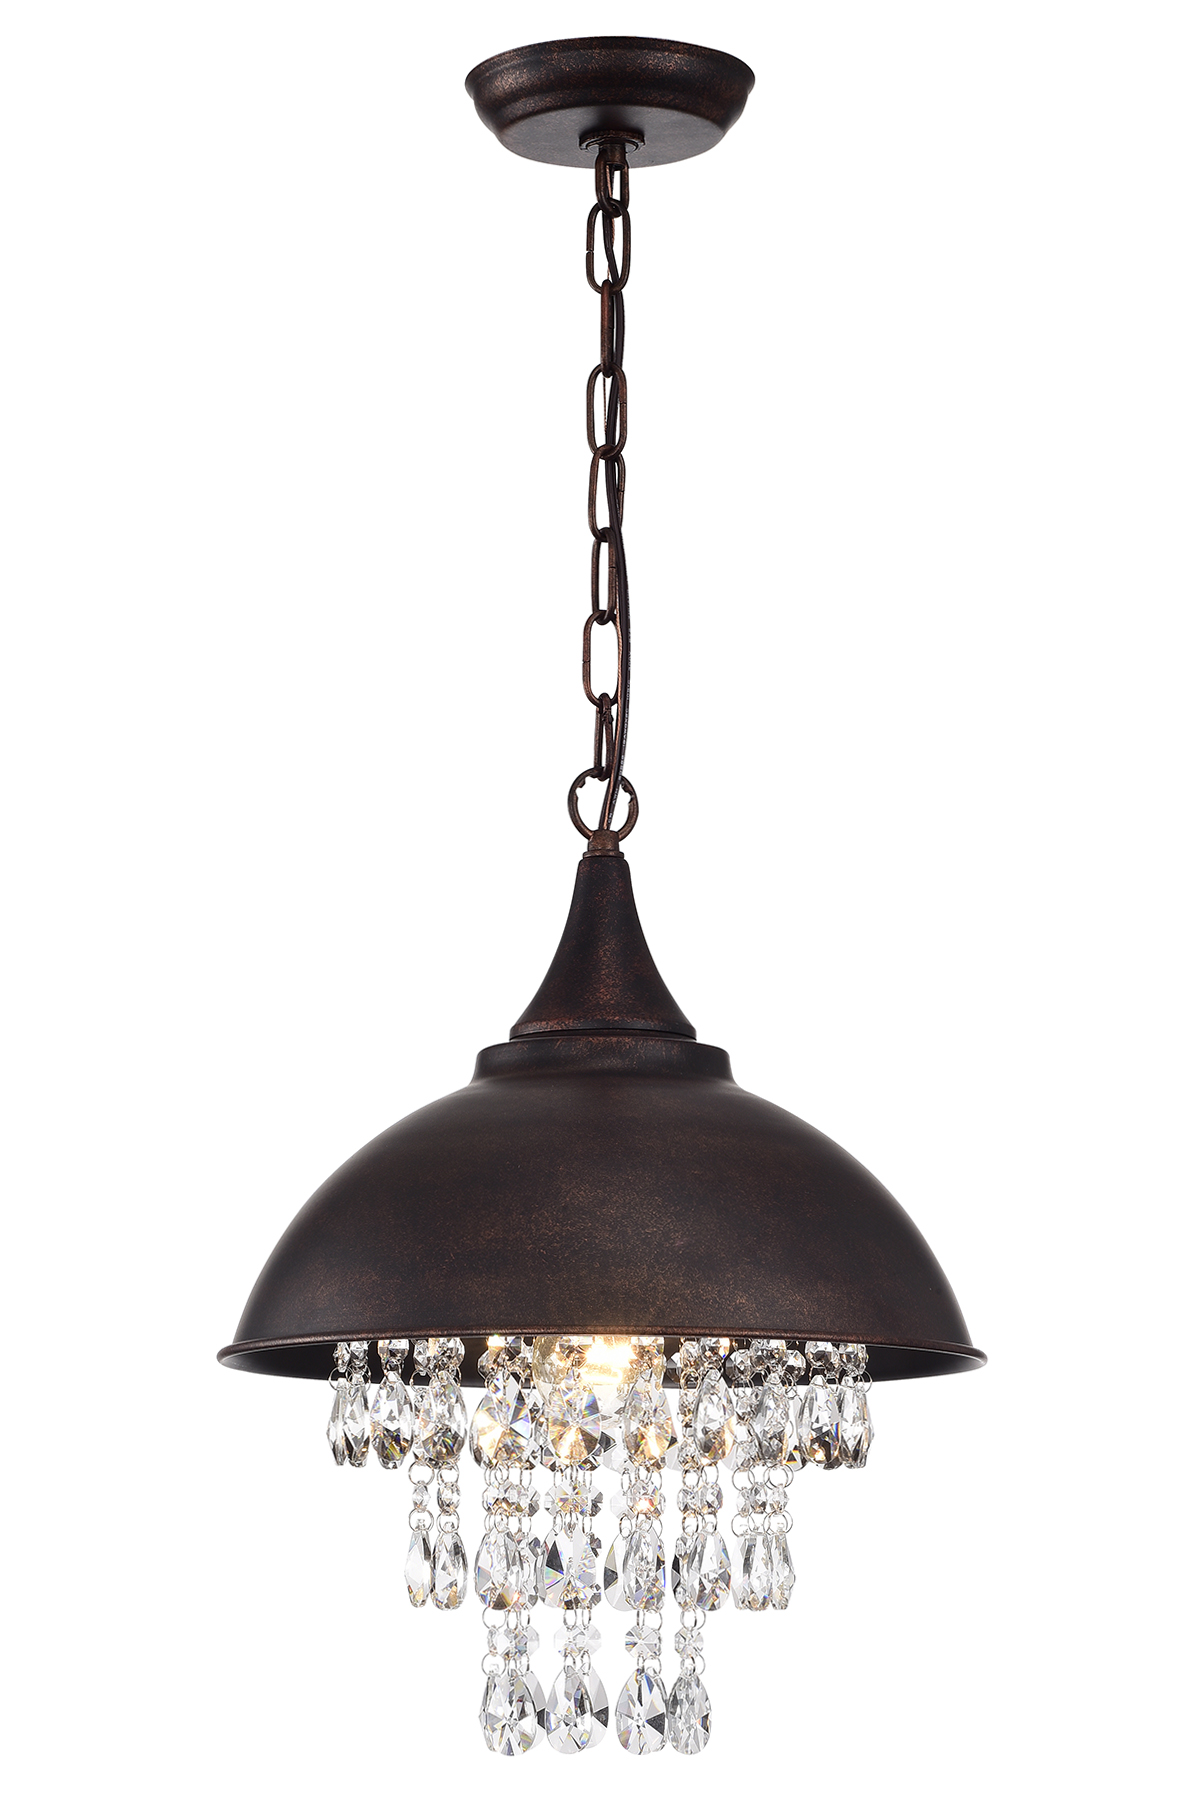 1 Light Antique Copper Dome Modern Farmhouse Pendant With Hanging Crystals Edvivi Lighting